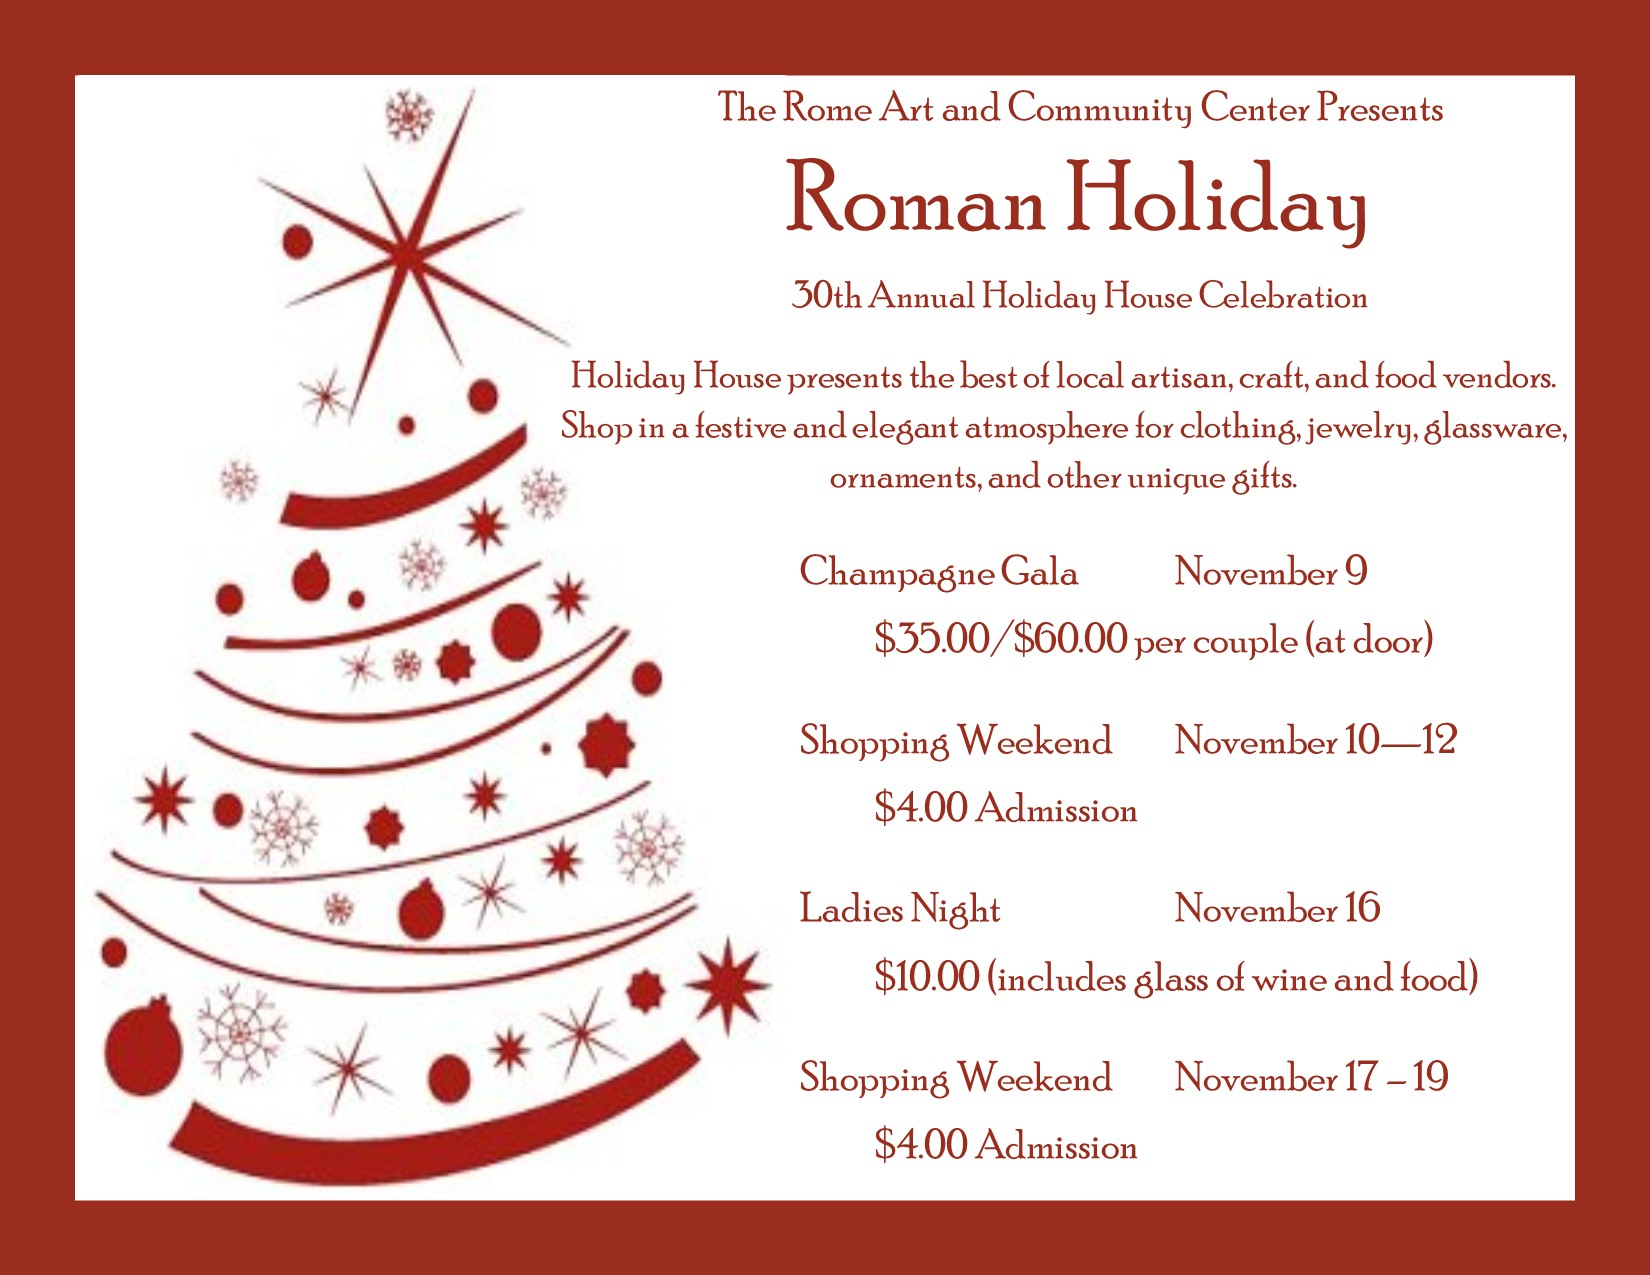 Roman Christmas Ornaments.Rome Art And Community Center Holiday House Champagne Gala